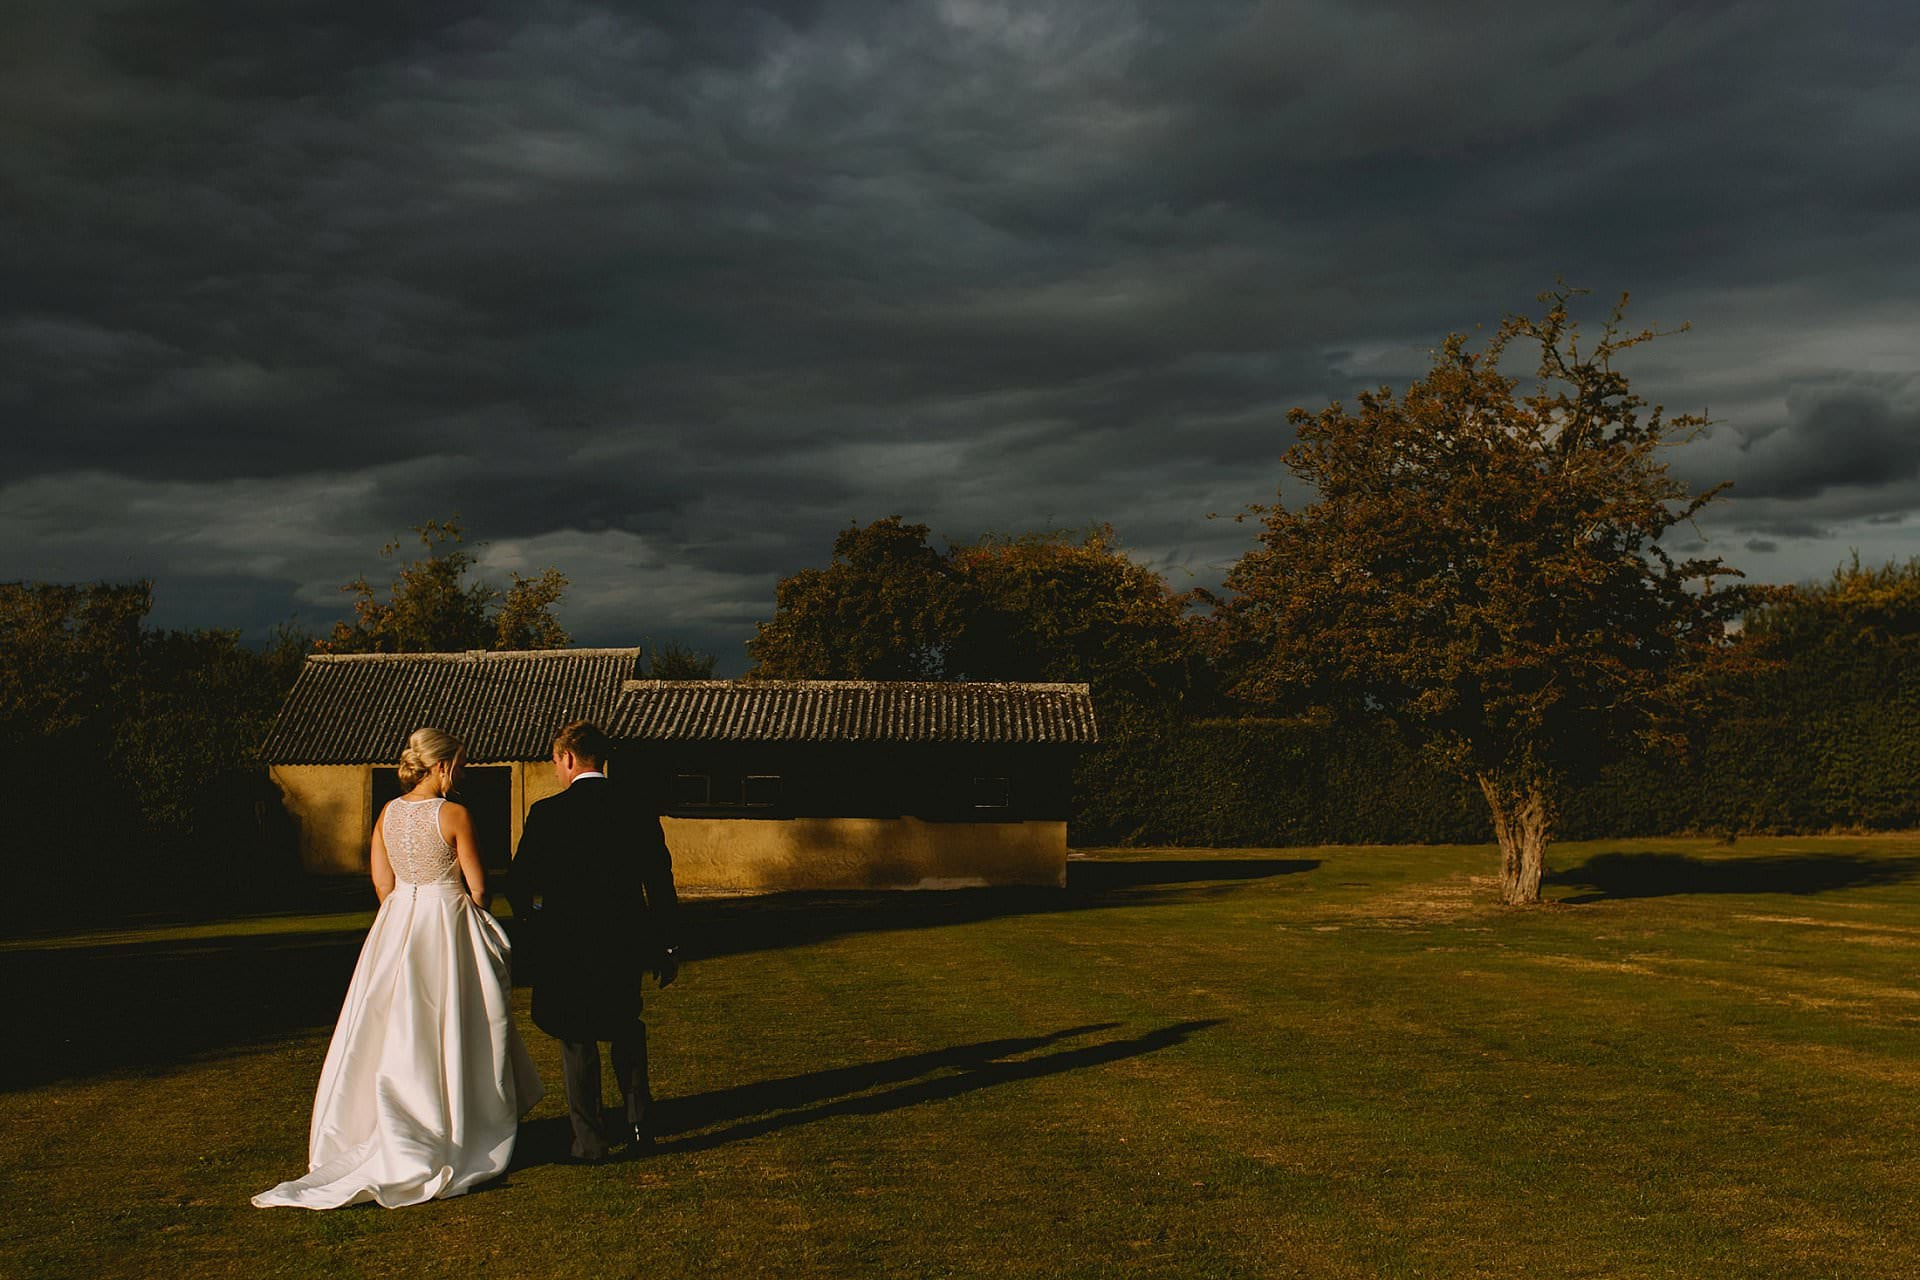 Bride and groom walk away with dark rain clouds above